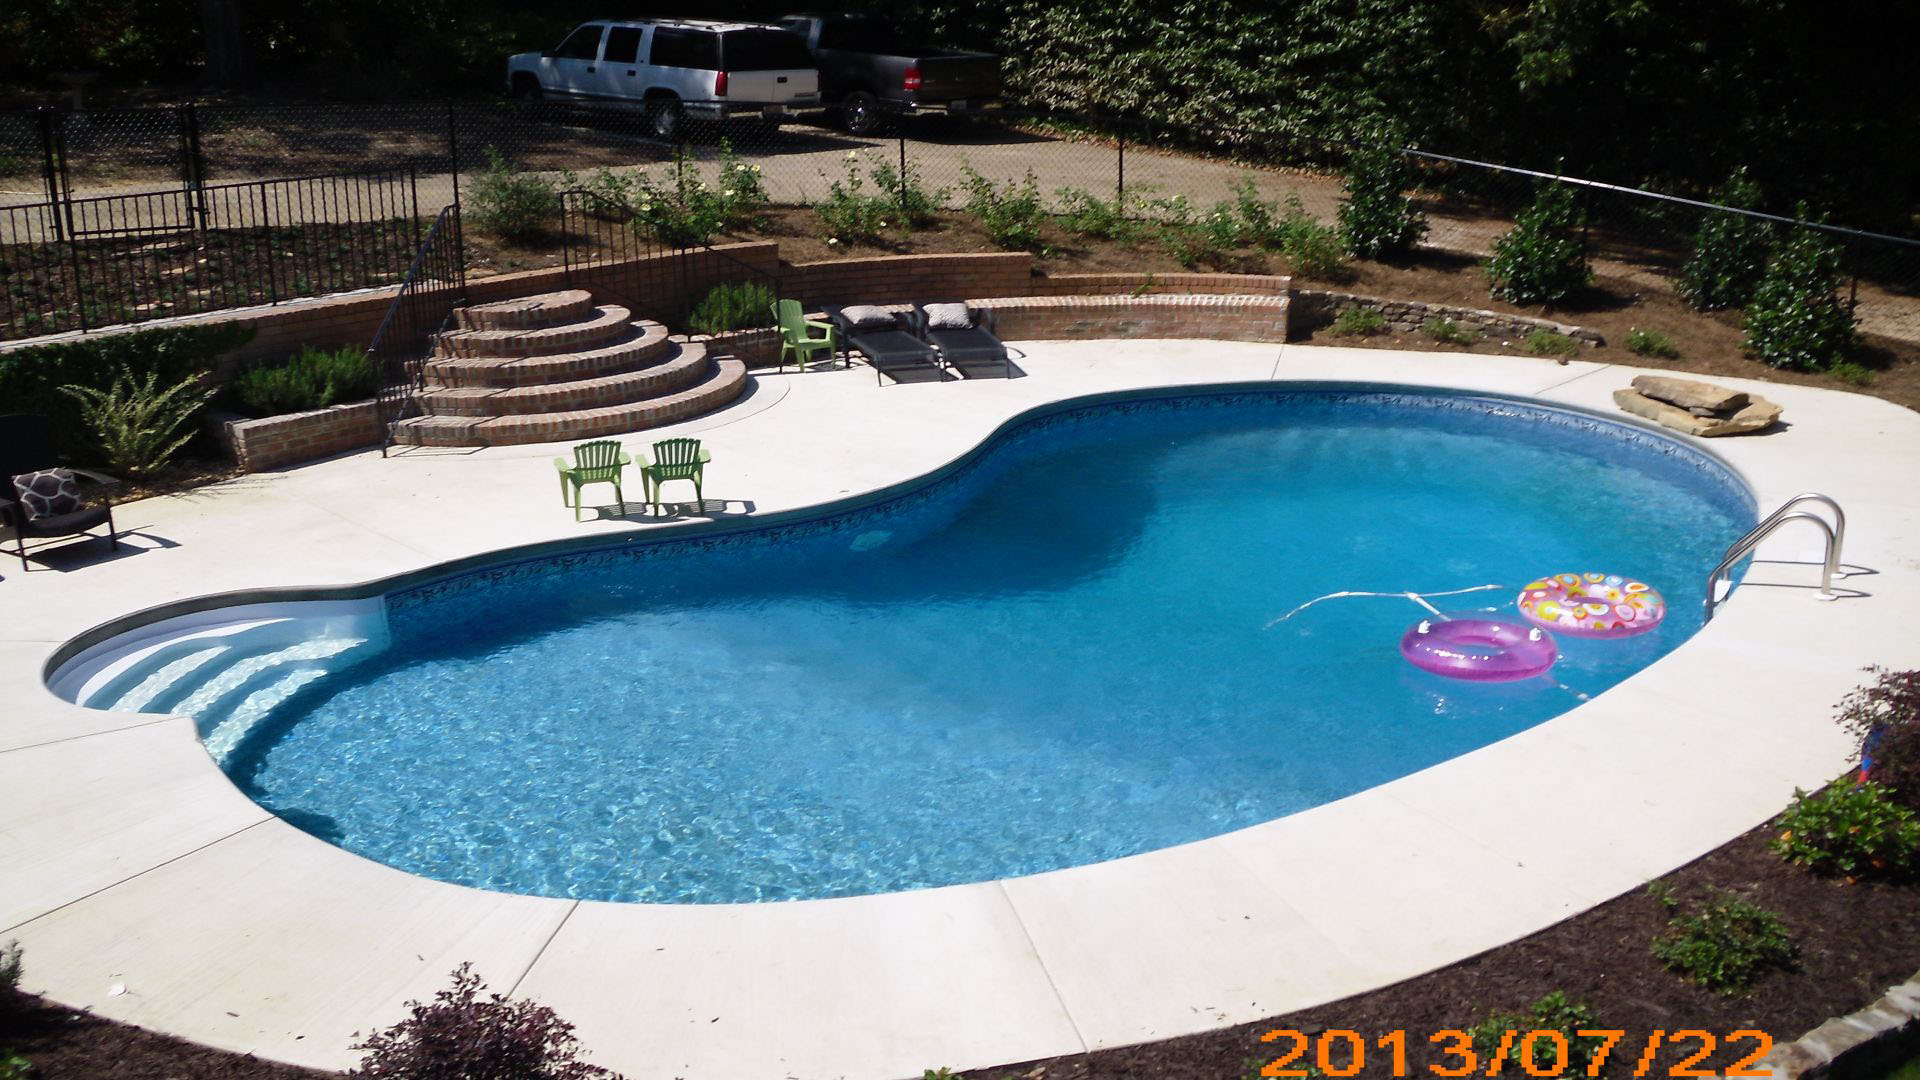 Vinyl liner pool construction columbus georgia for Pool liners